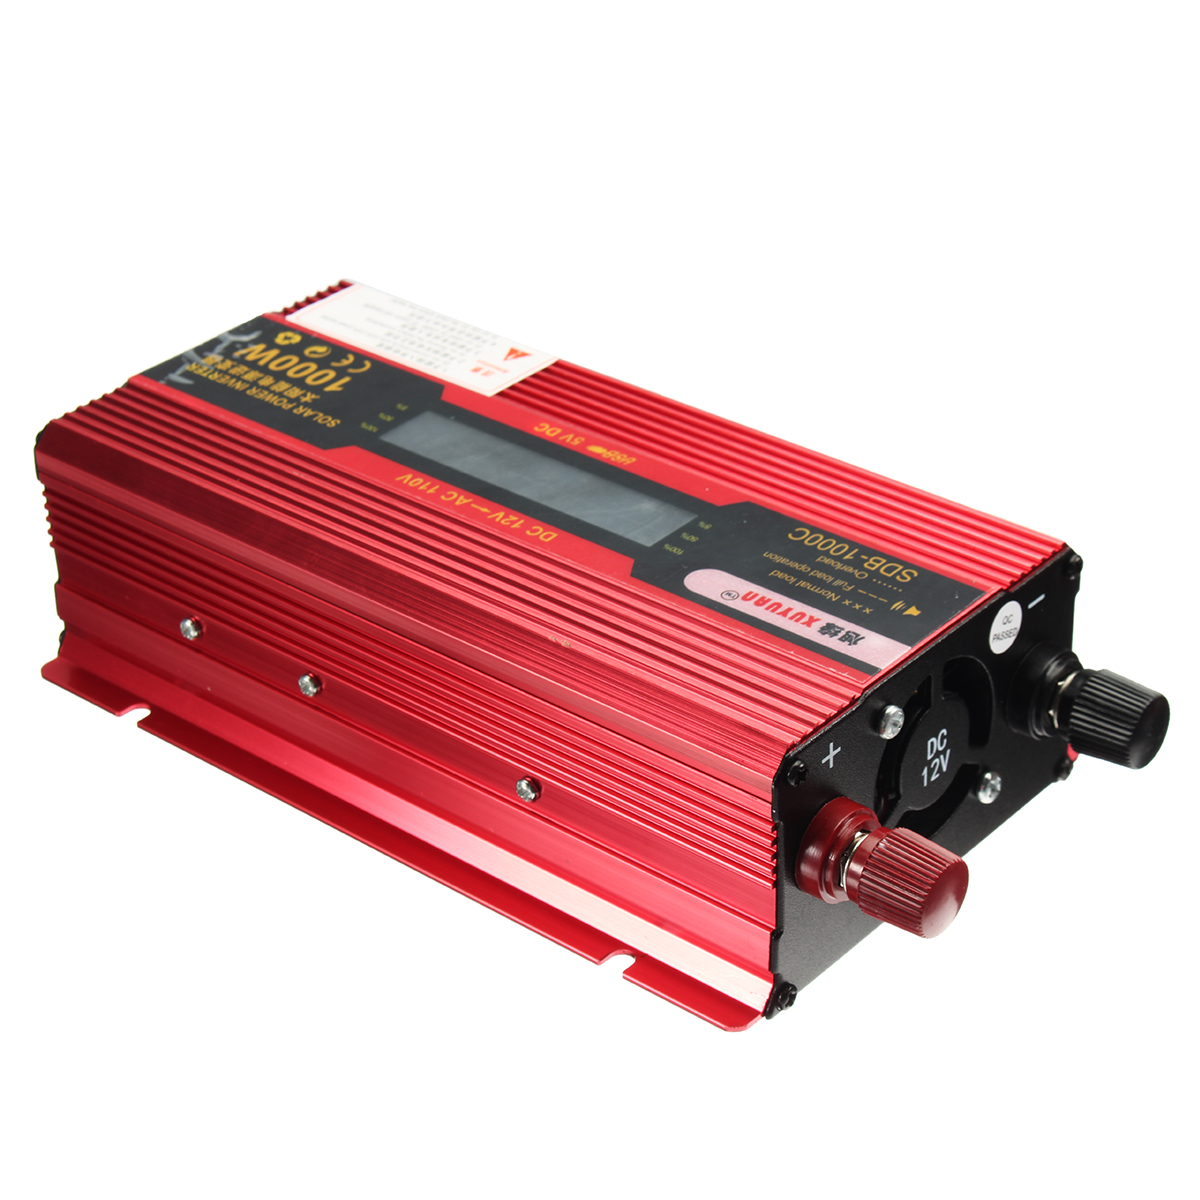 Other Gadgets - 1000W Solar Power Inverter 12V to 110V LCD